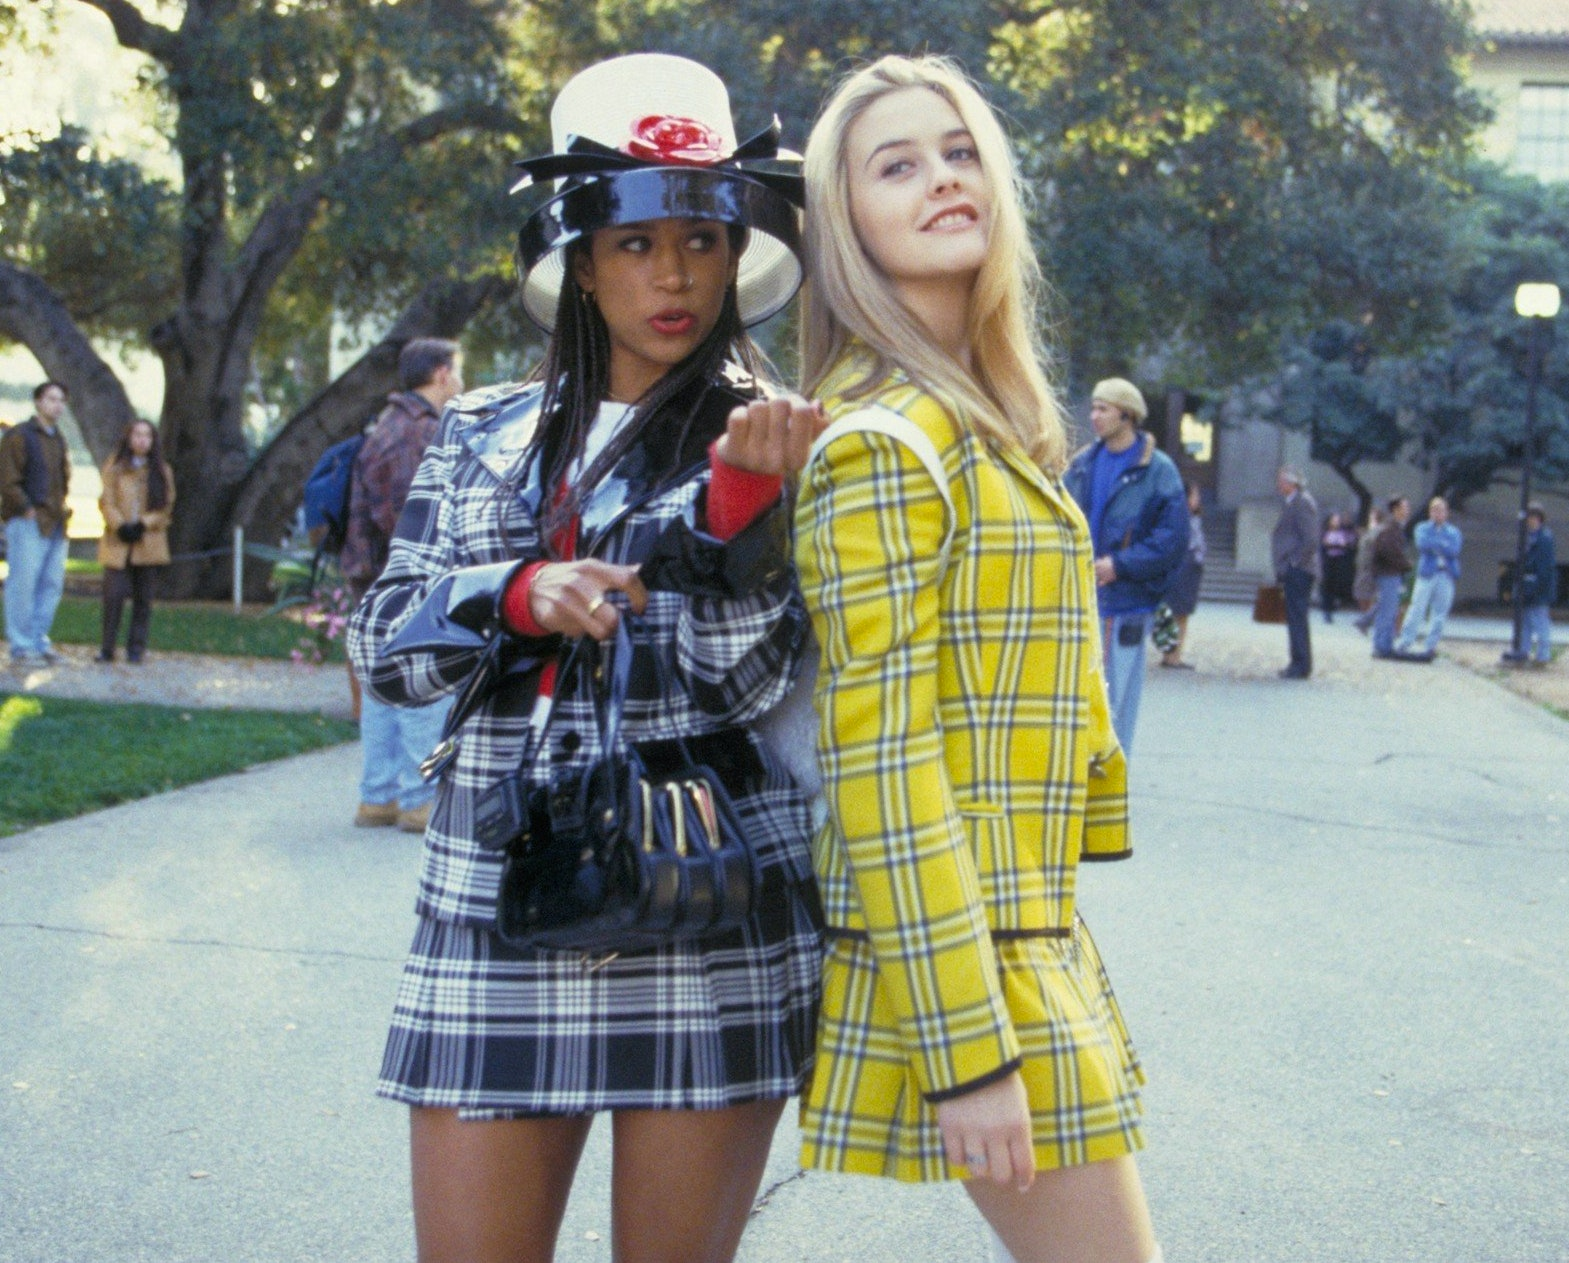 90s girls for outfits photo best photo